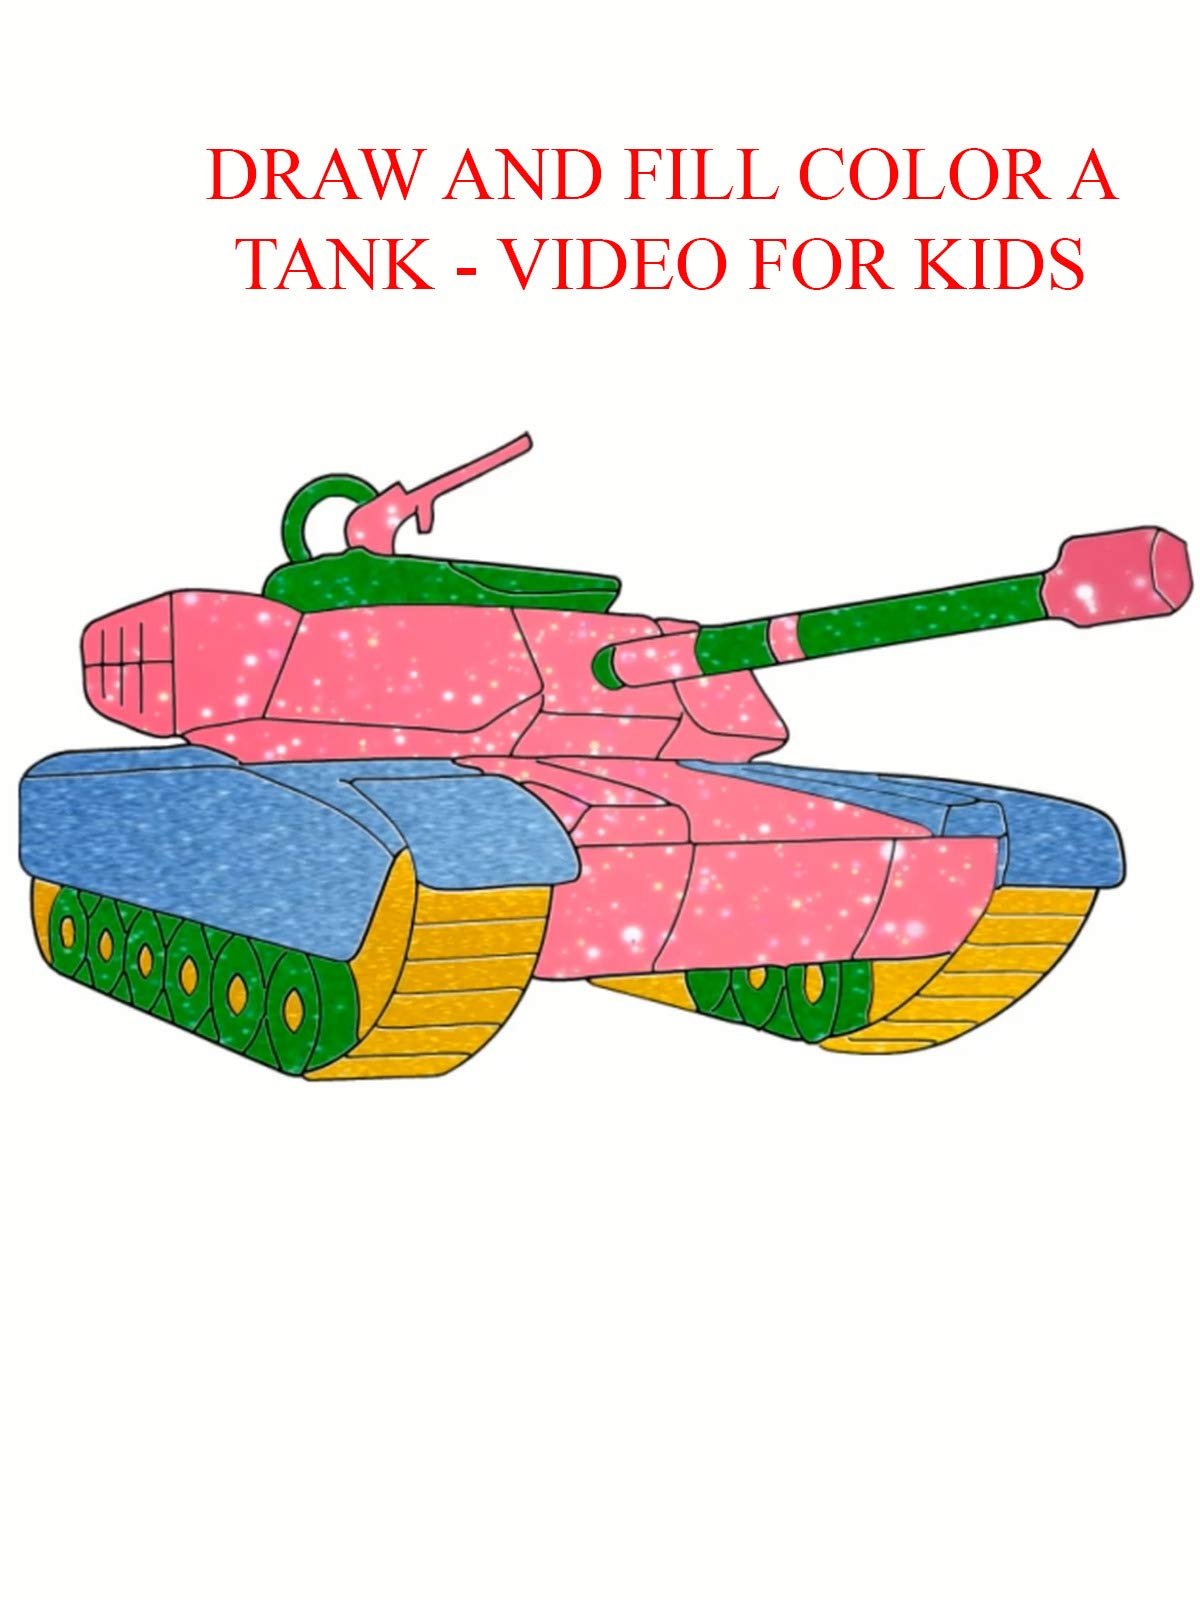 Clip: draw and fill color a tank - video for kids